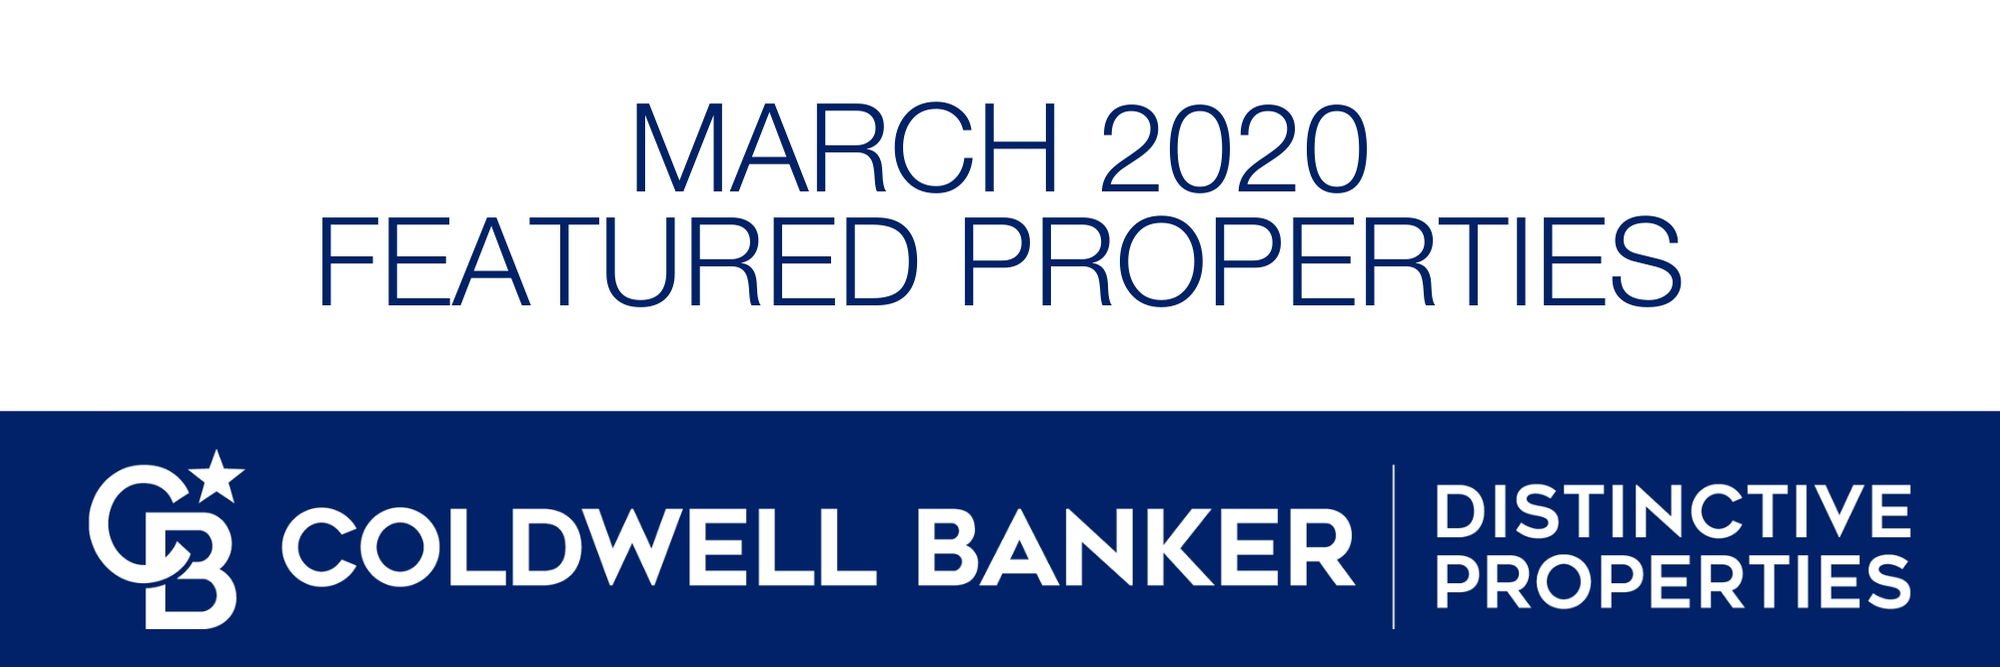 March 2020 Featured Properties